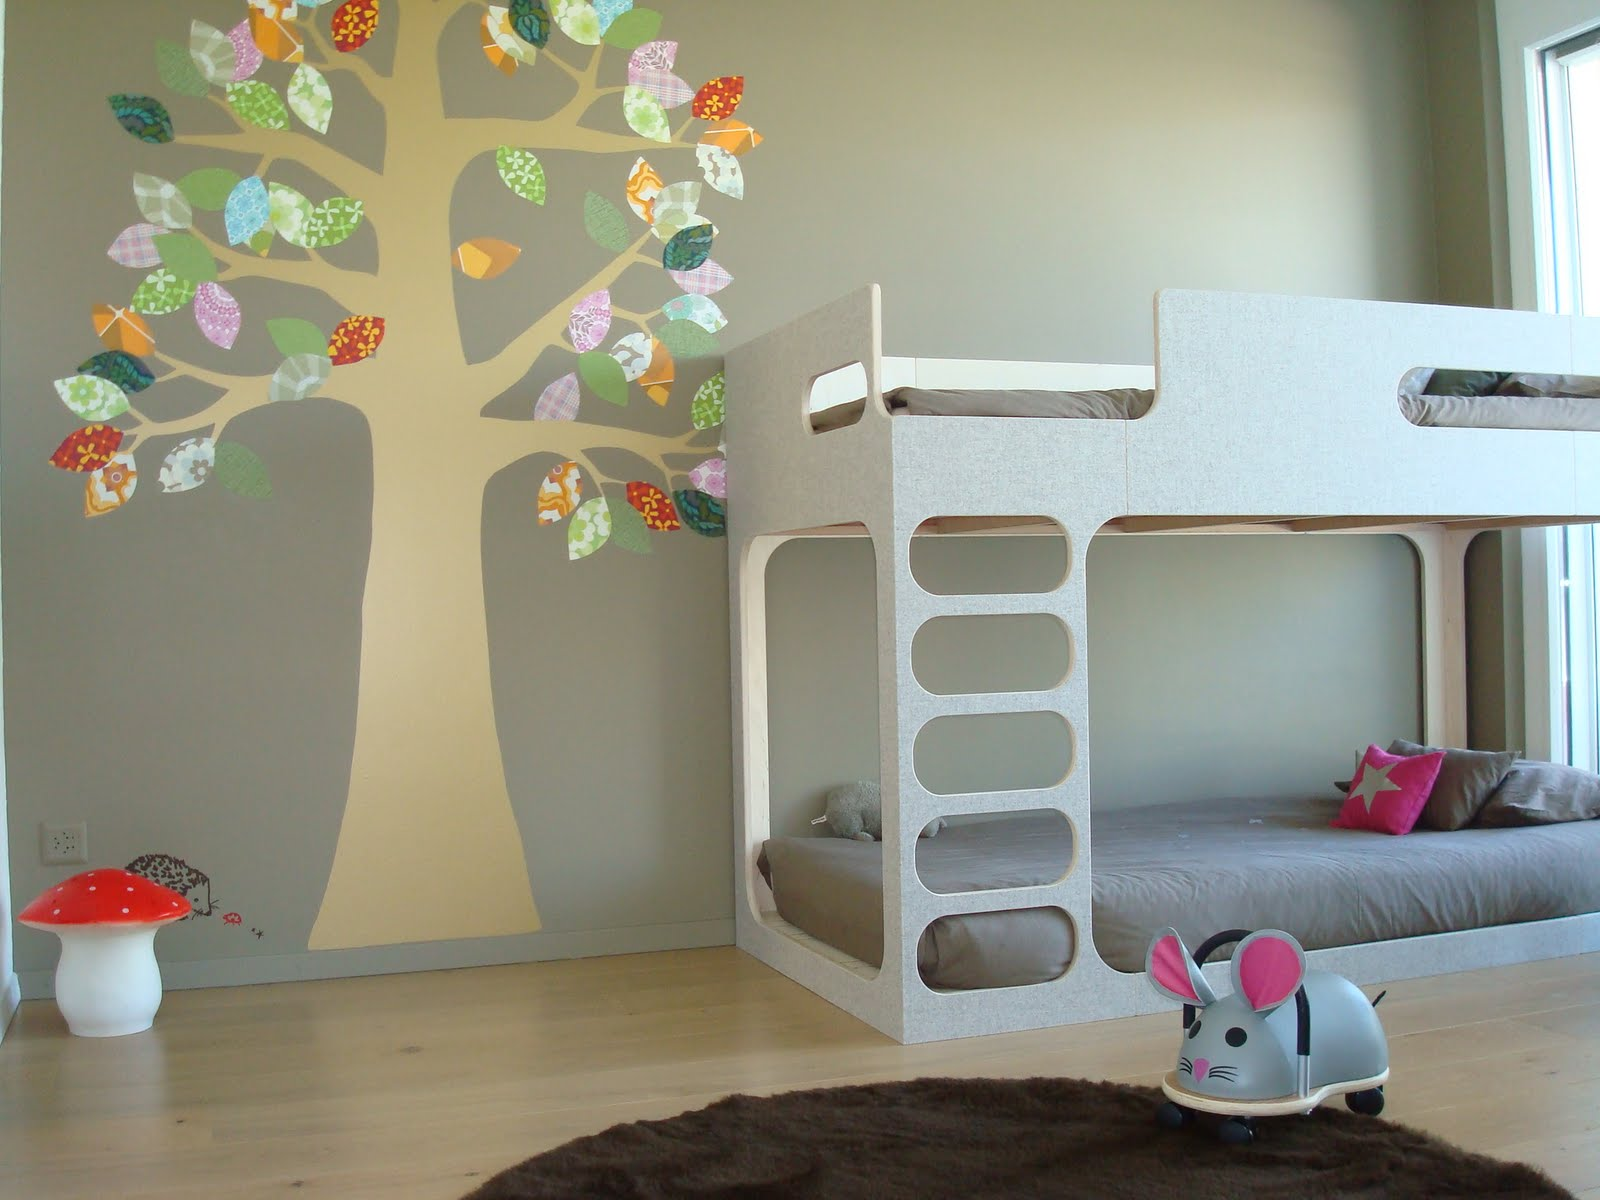 Childrens bedroom wallpaper ideas home decor uk for Living room ideas kids